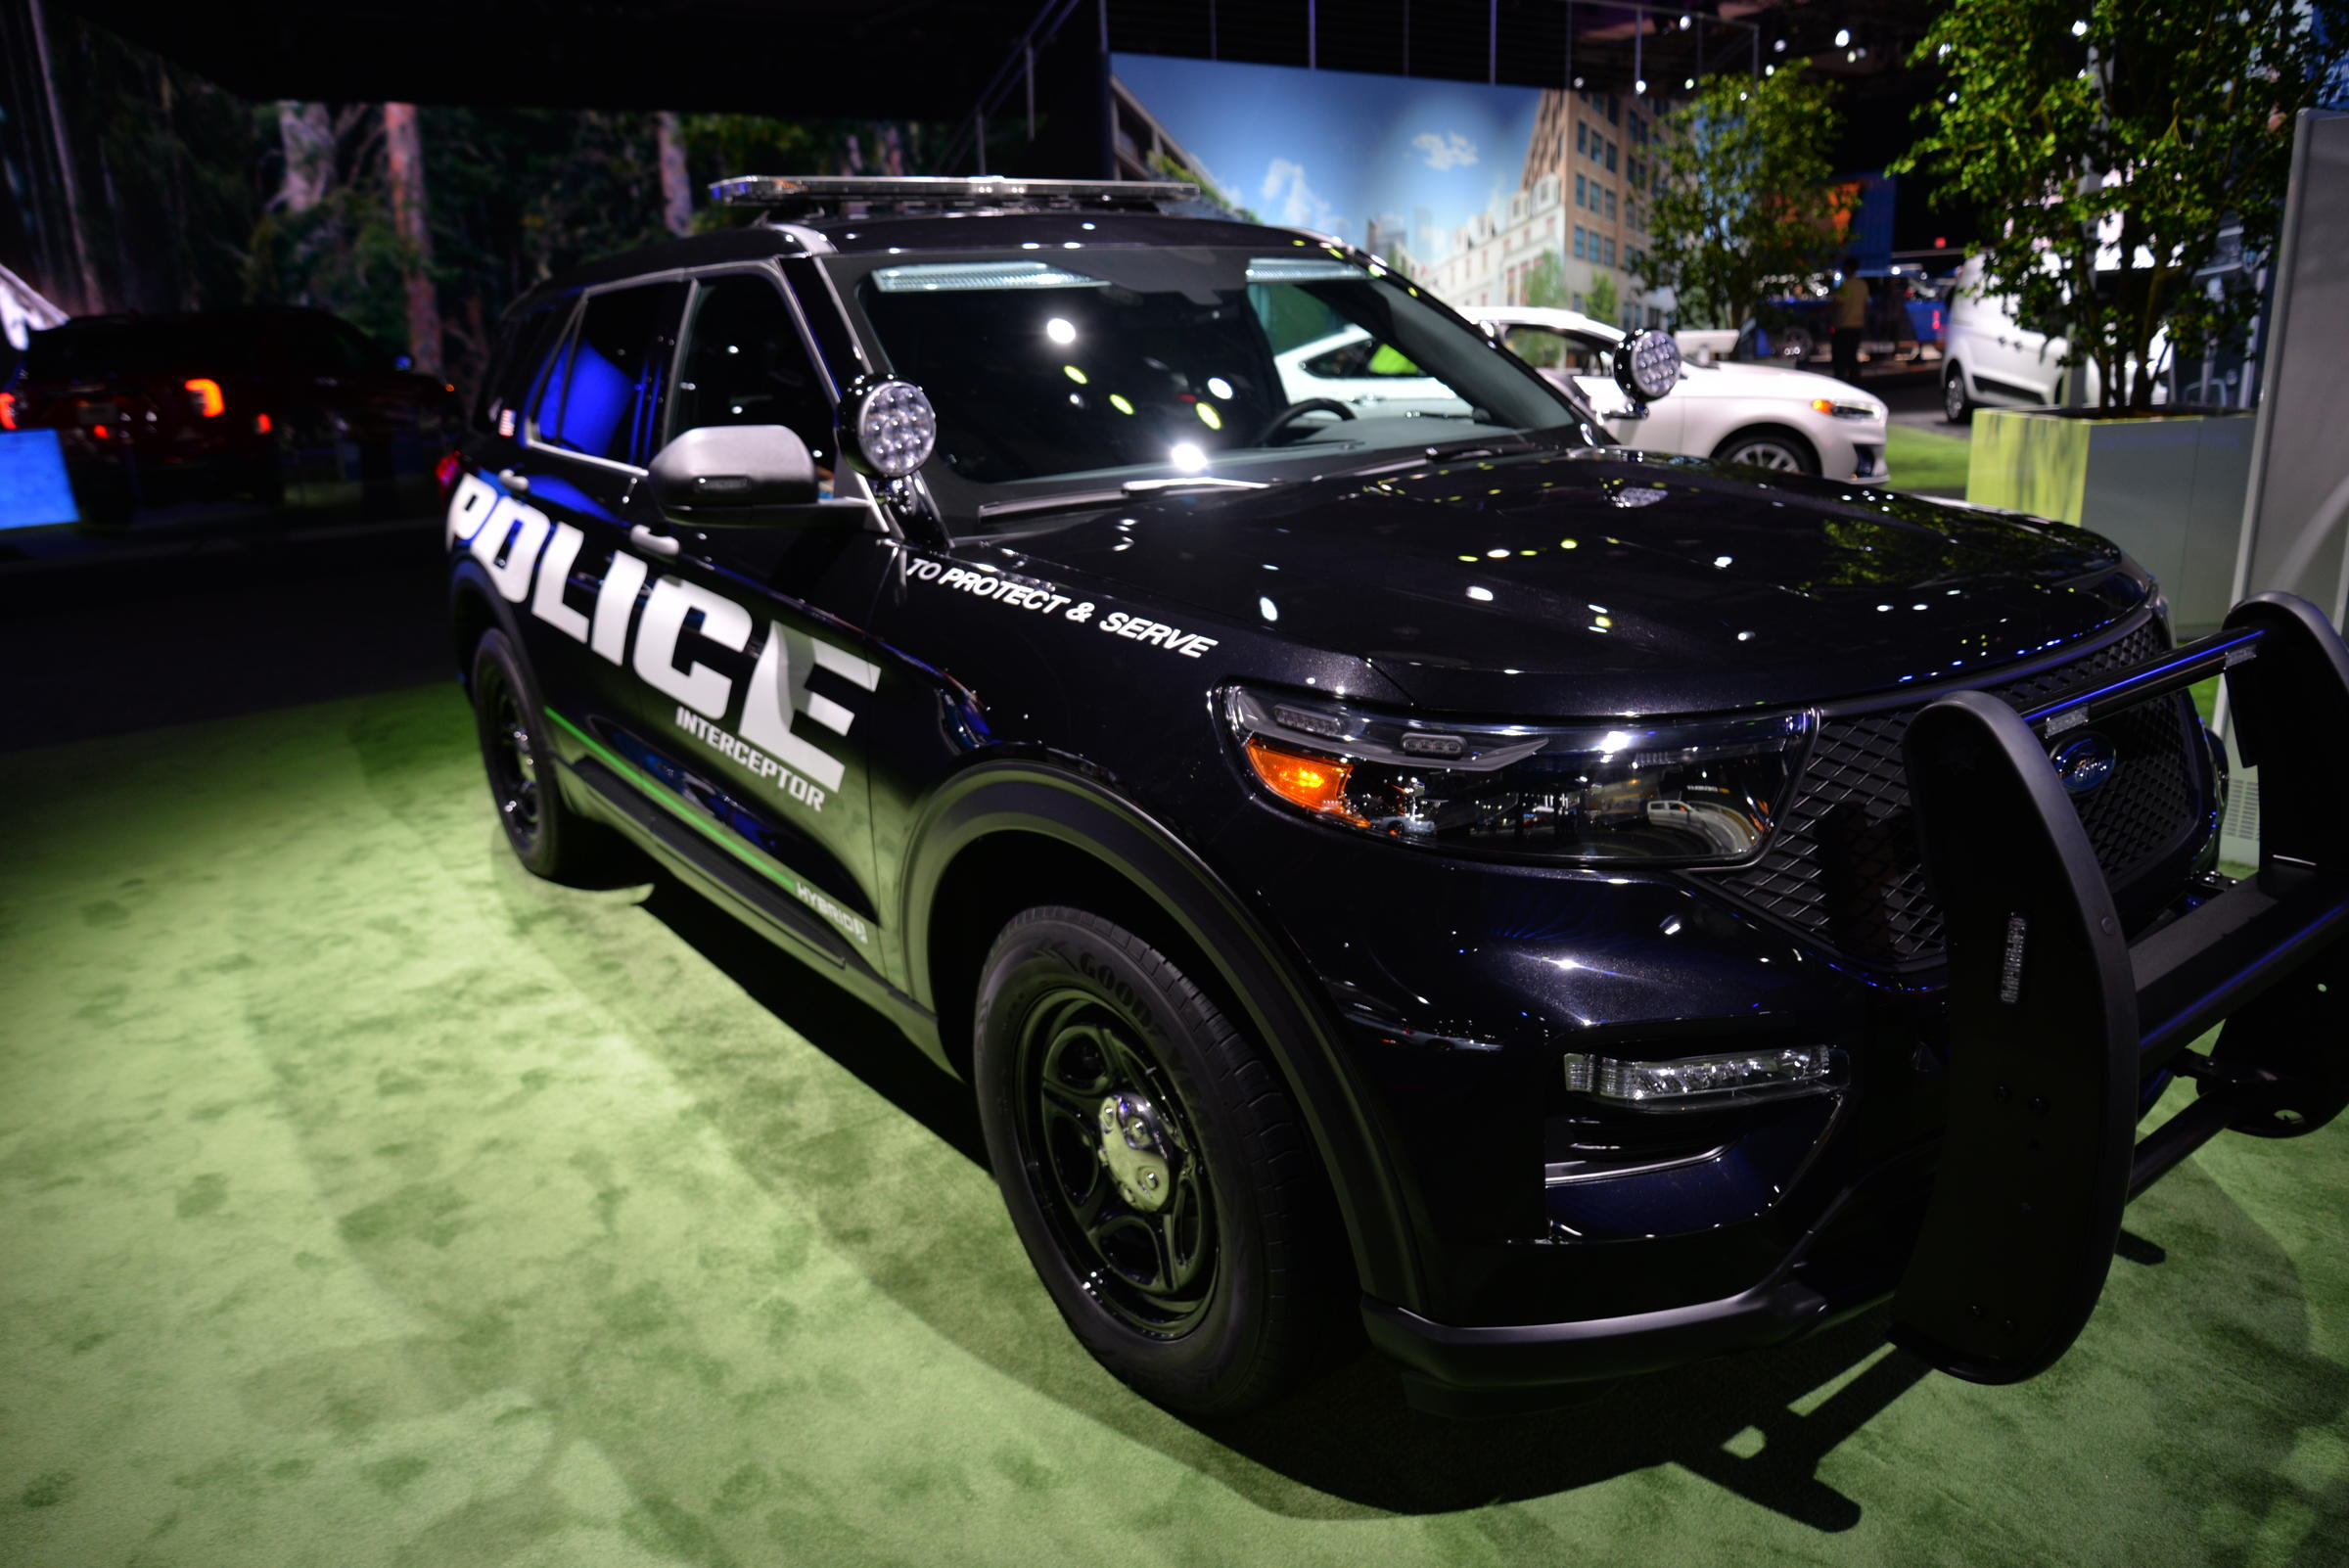 ford police hybrid set  save police departments money  protecting  environment wkar